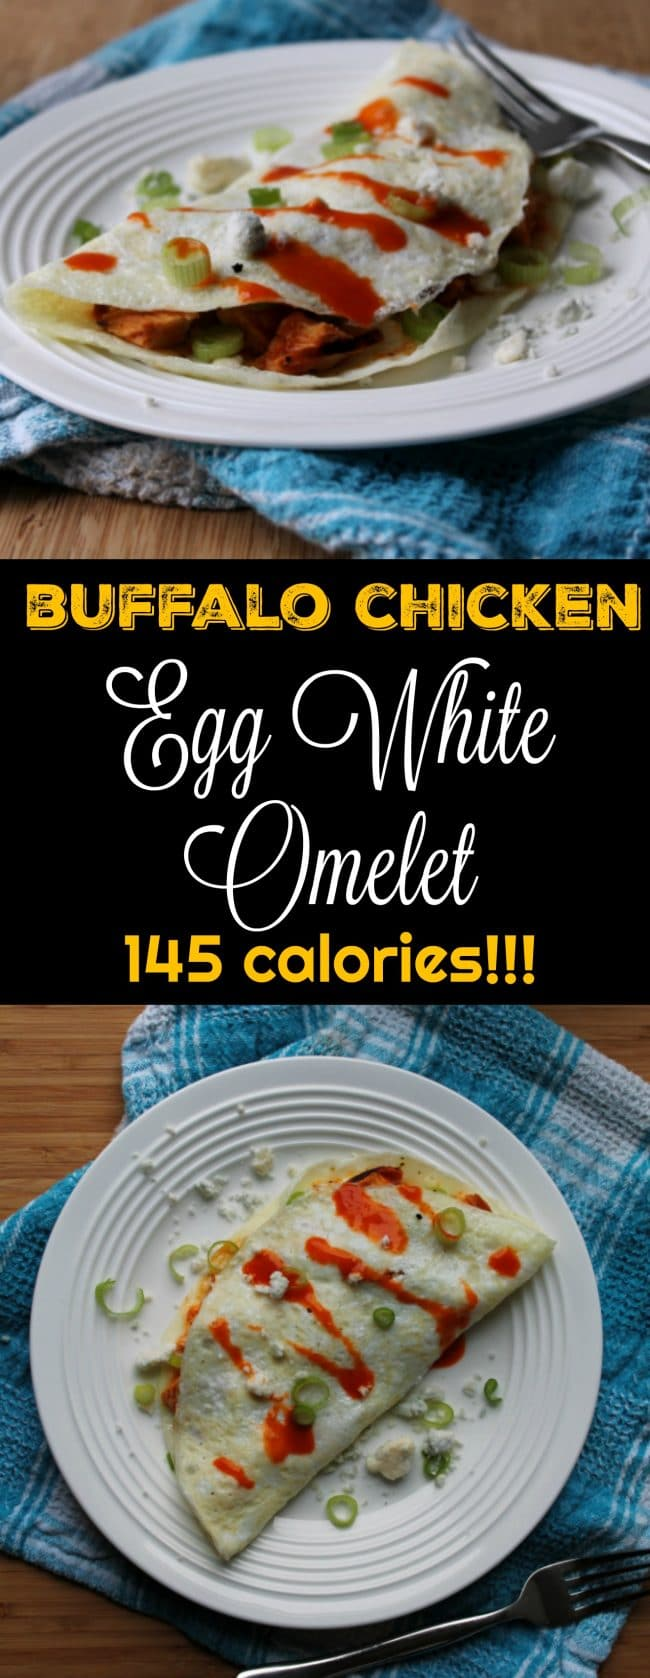 Buffalo Chicken Egg White Omelet only 145 calories